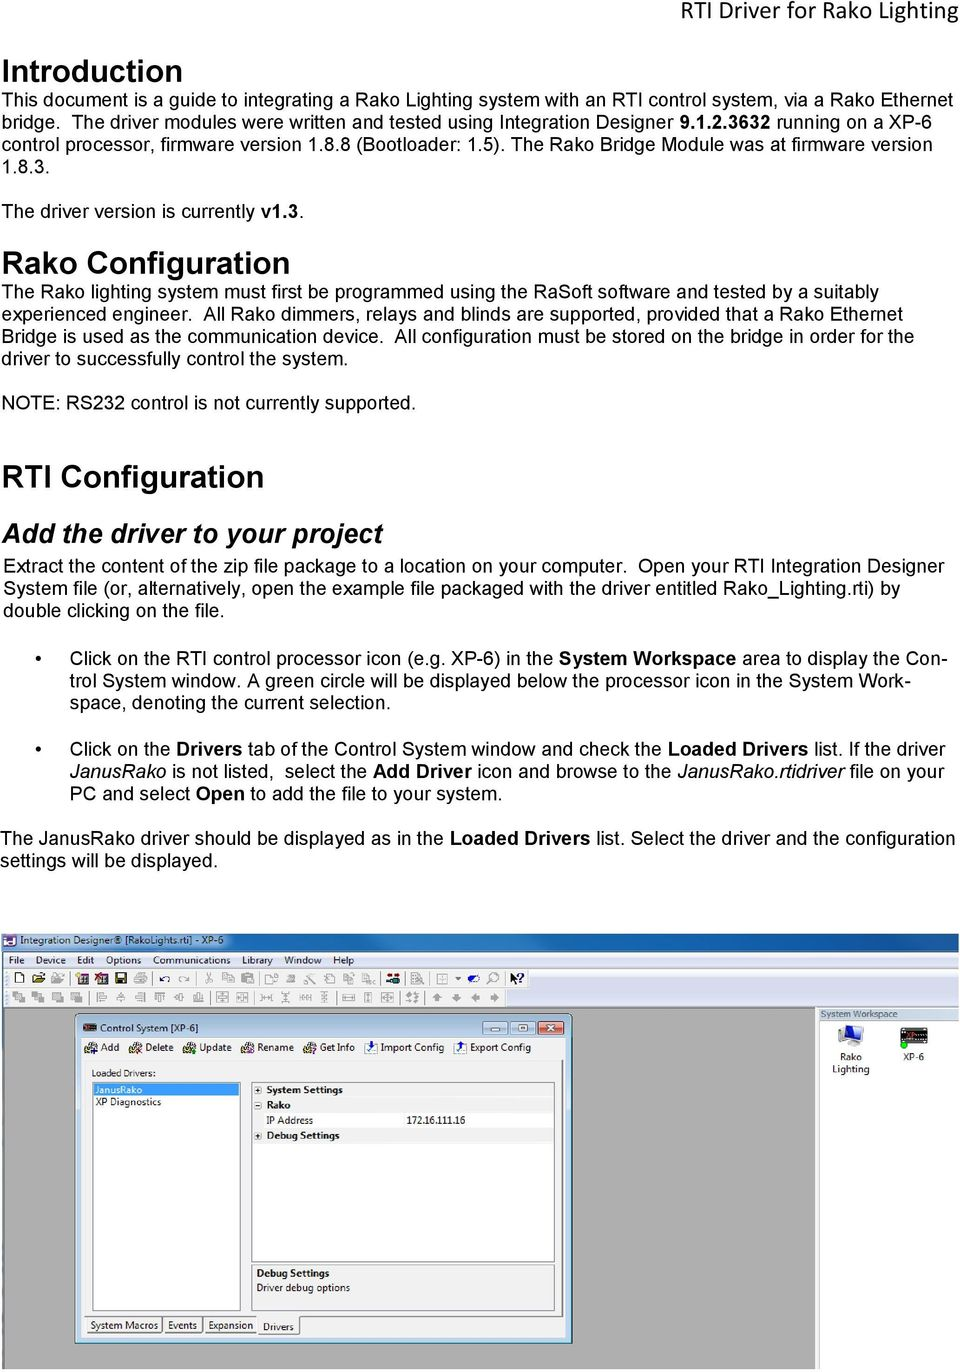 Rako Lighting Driver  For use with: Driver software written